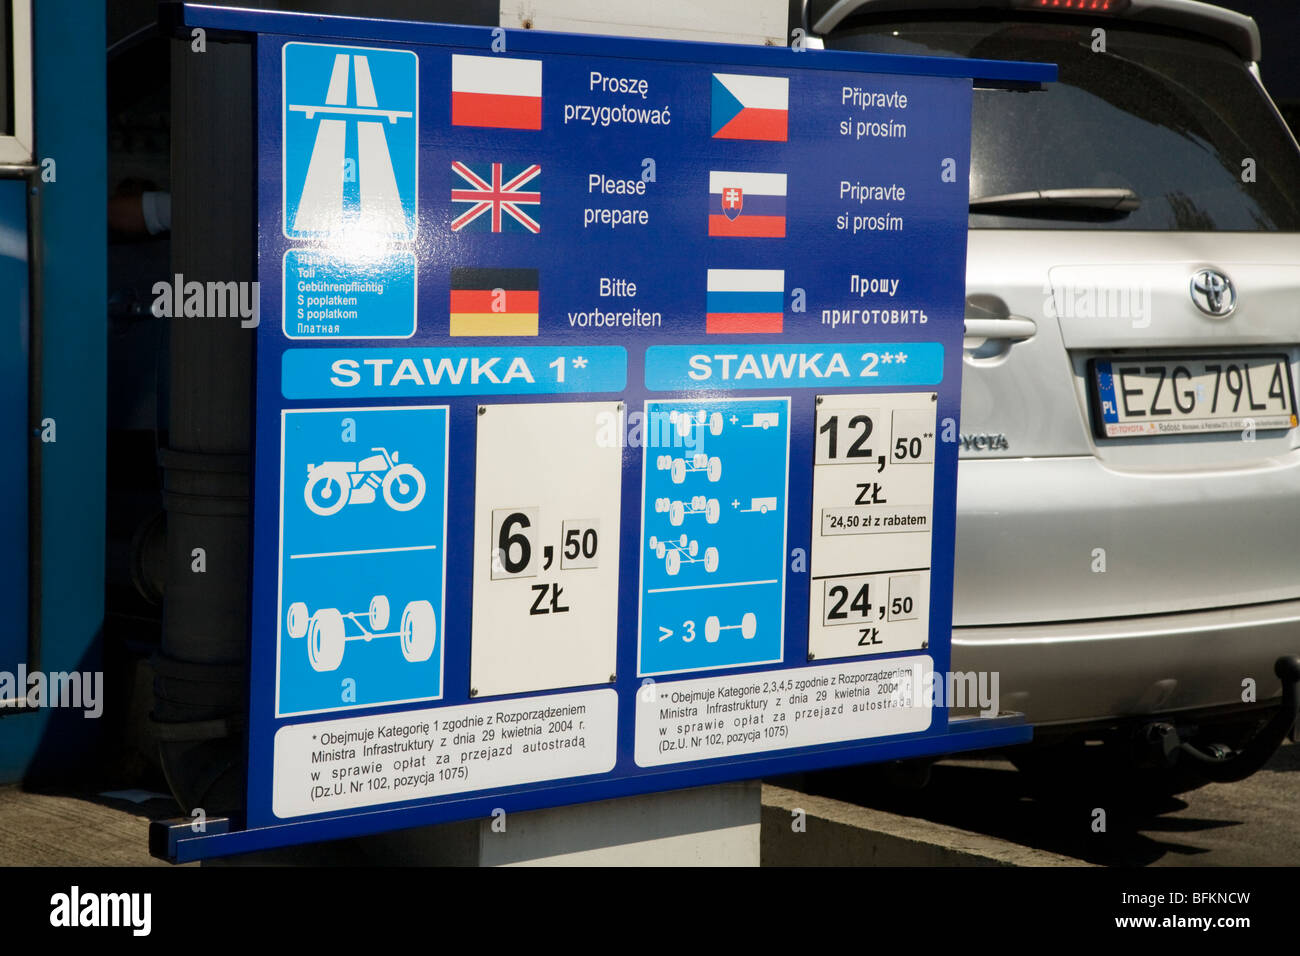 Price list for various vehicles at a Polish motorway toll booth. Near Krakow, Poland. - Stock Image